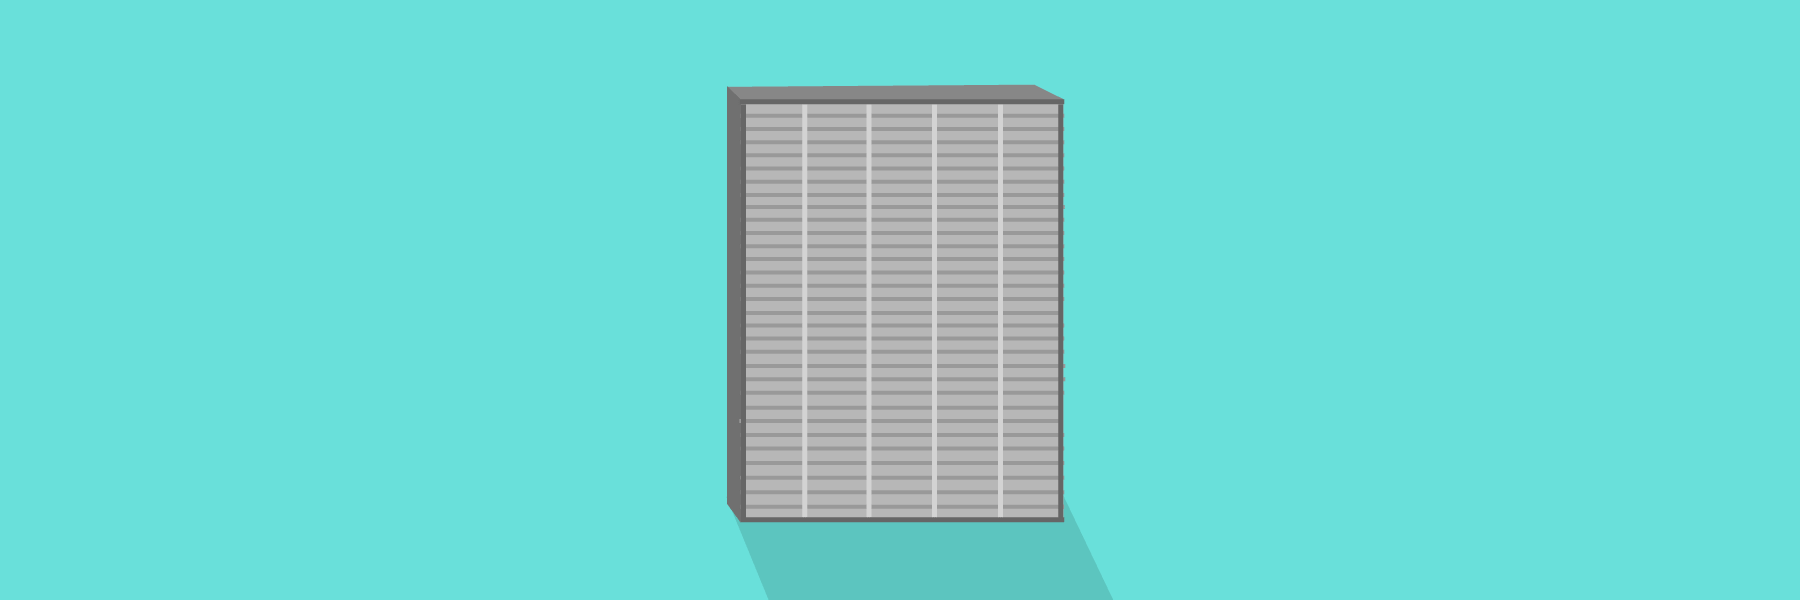 Can HEPA filters be washed and reused?